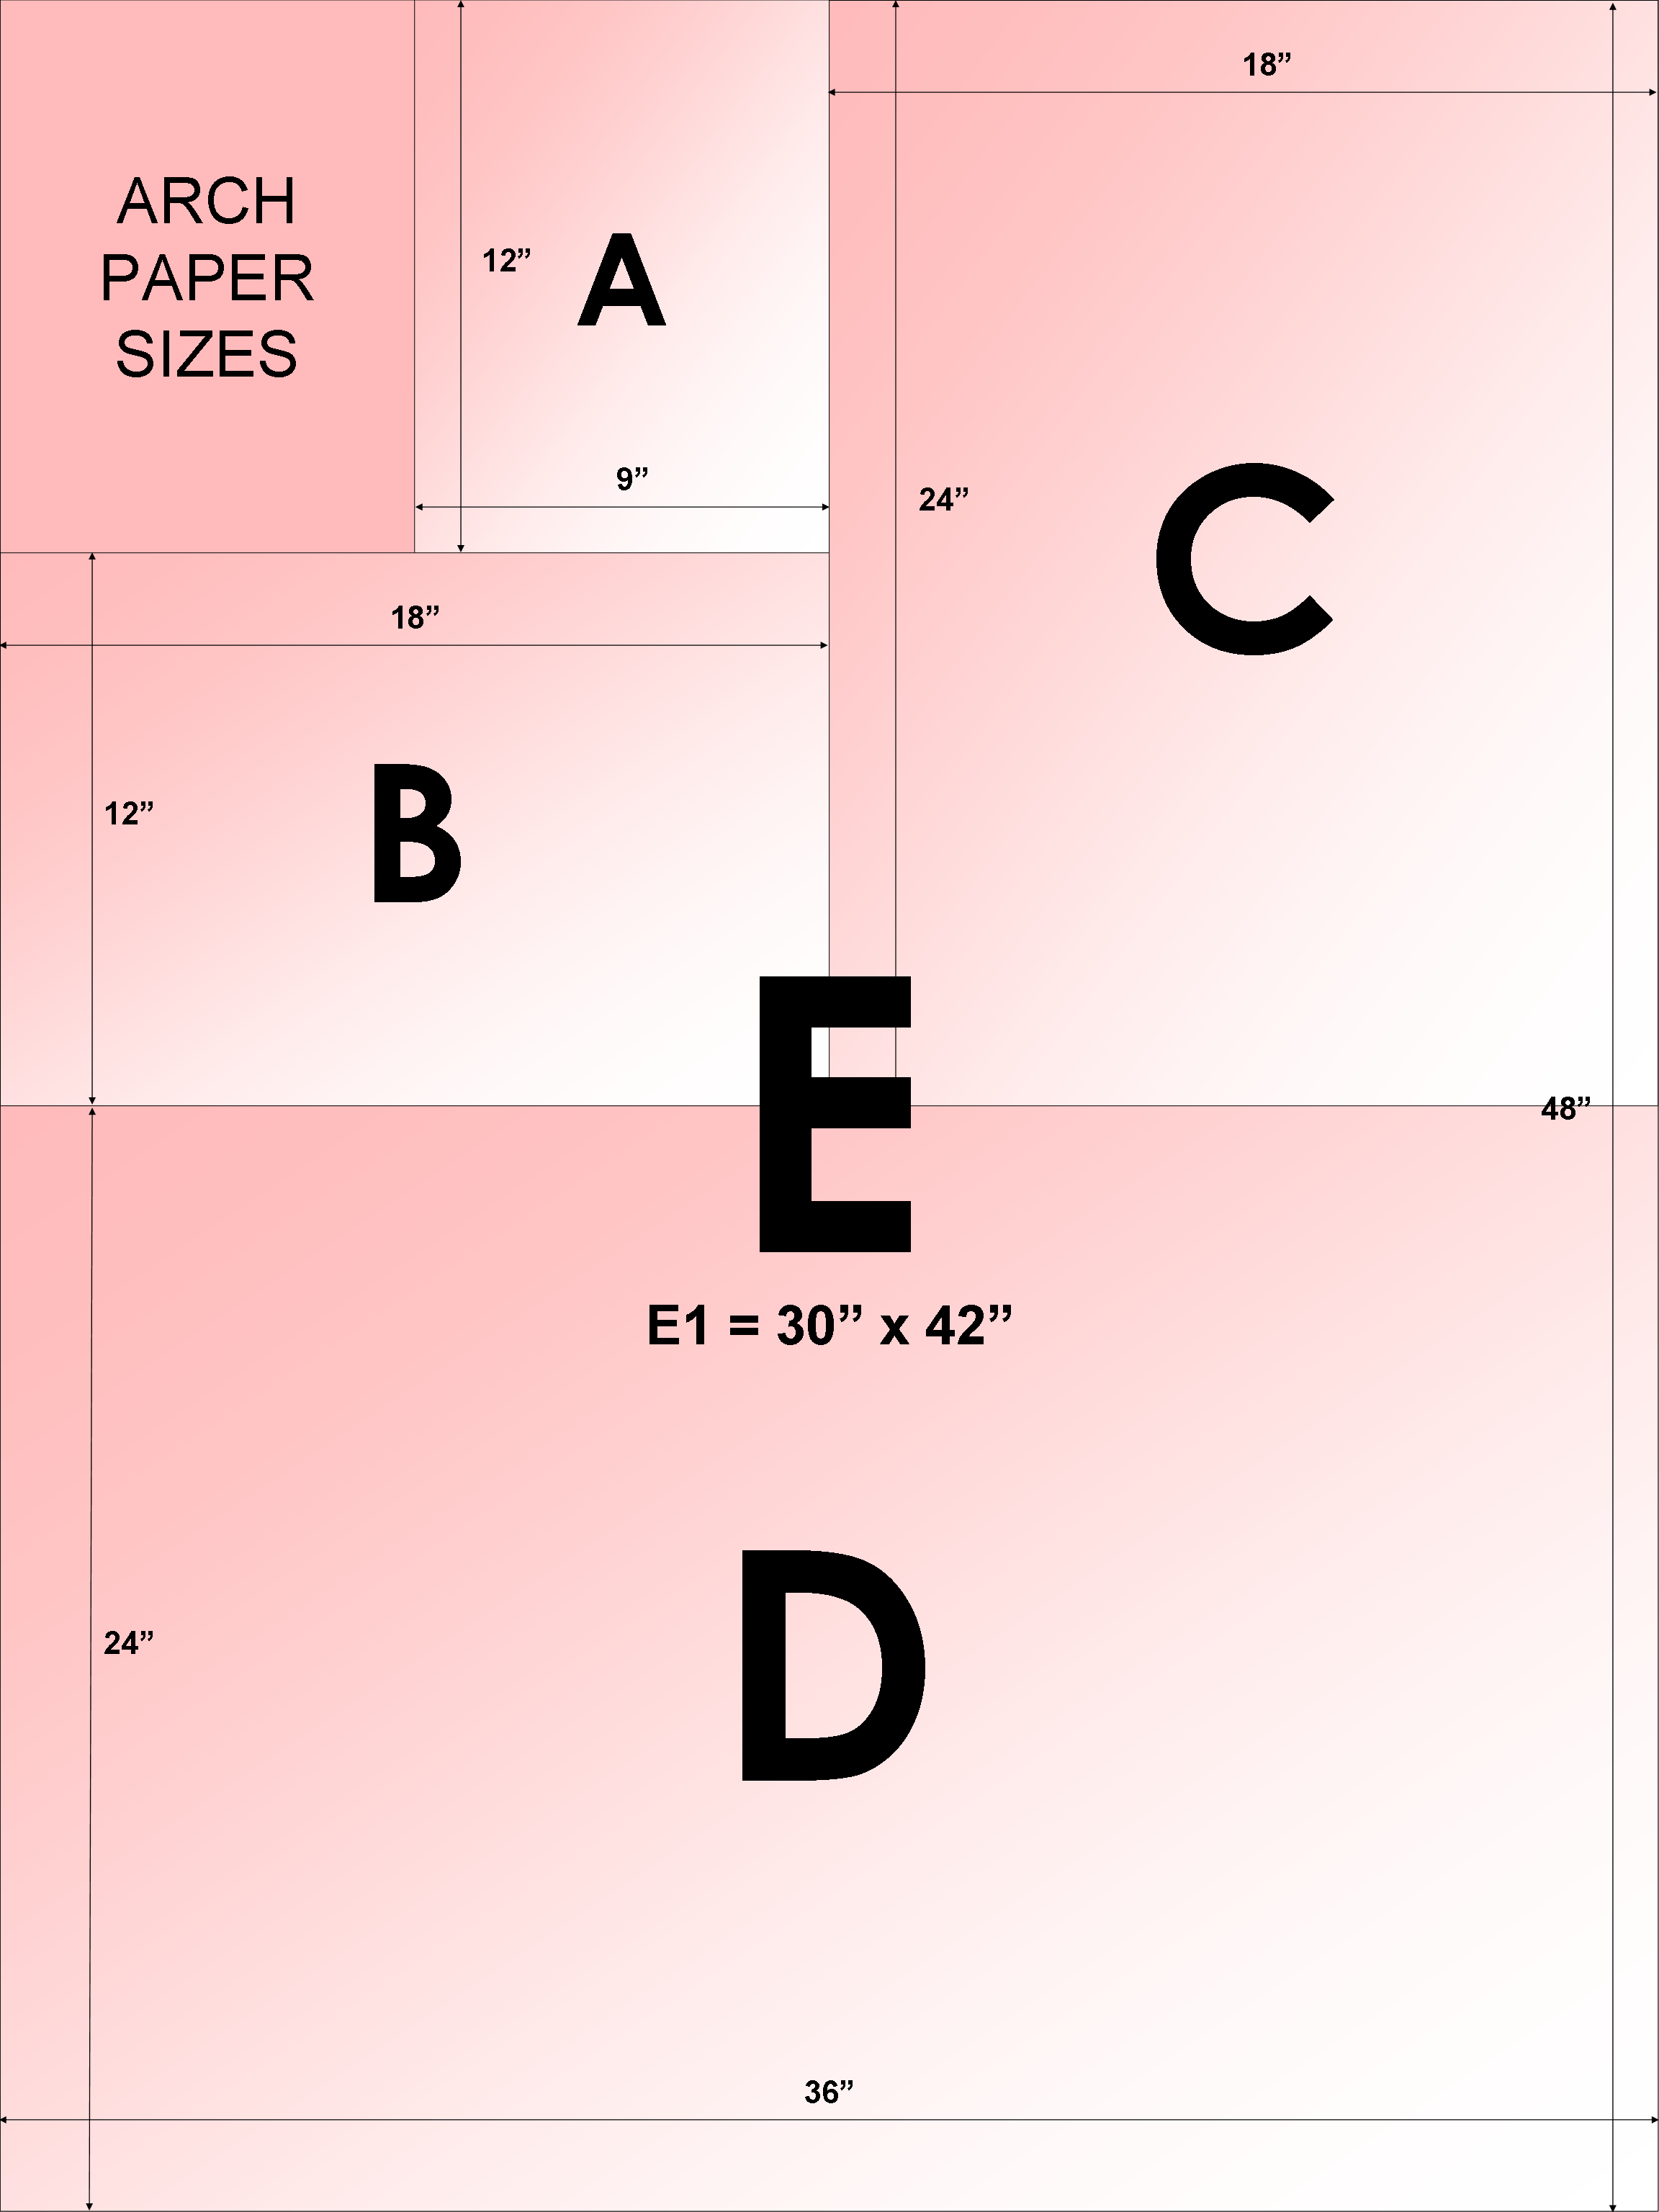 Sizes of paper